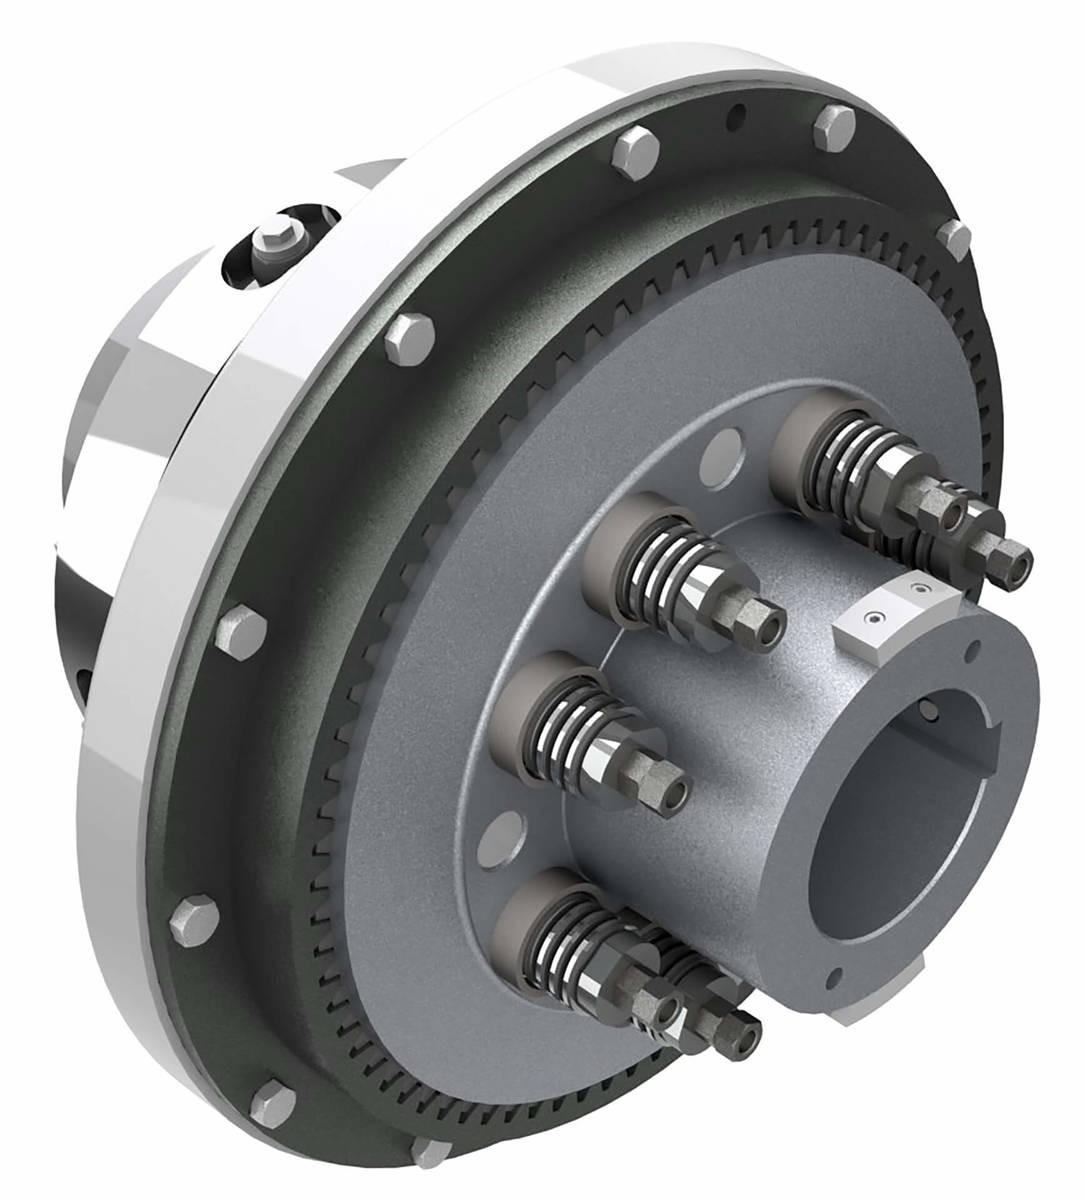 Desch Planox® PT loaded by cup springs  Multi Plate Friction Clutch Image